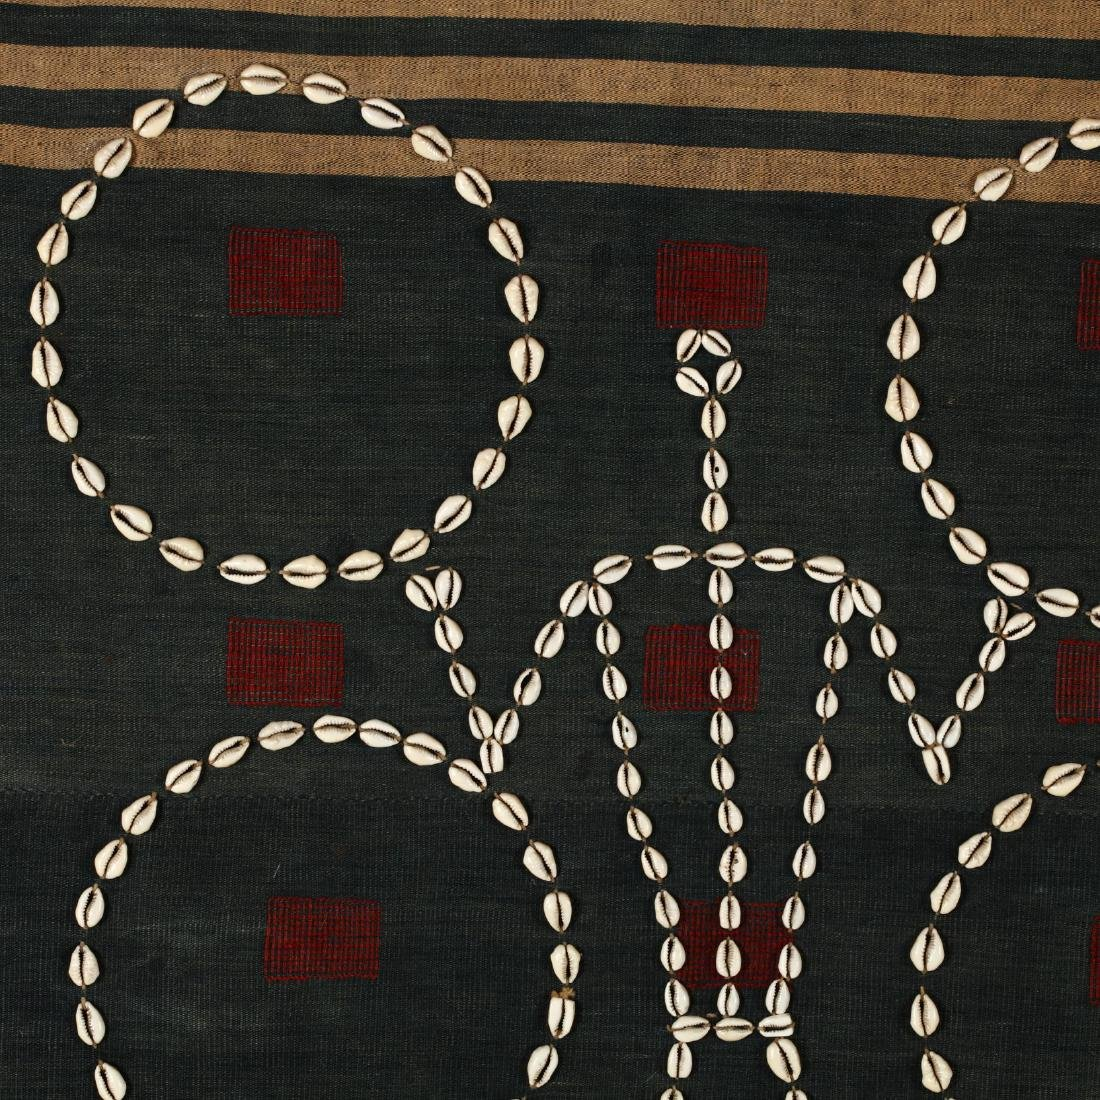 Naga Tribal Blanket with Cowrie Shells - 2